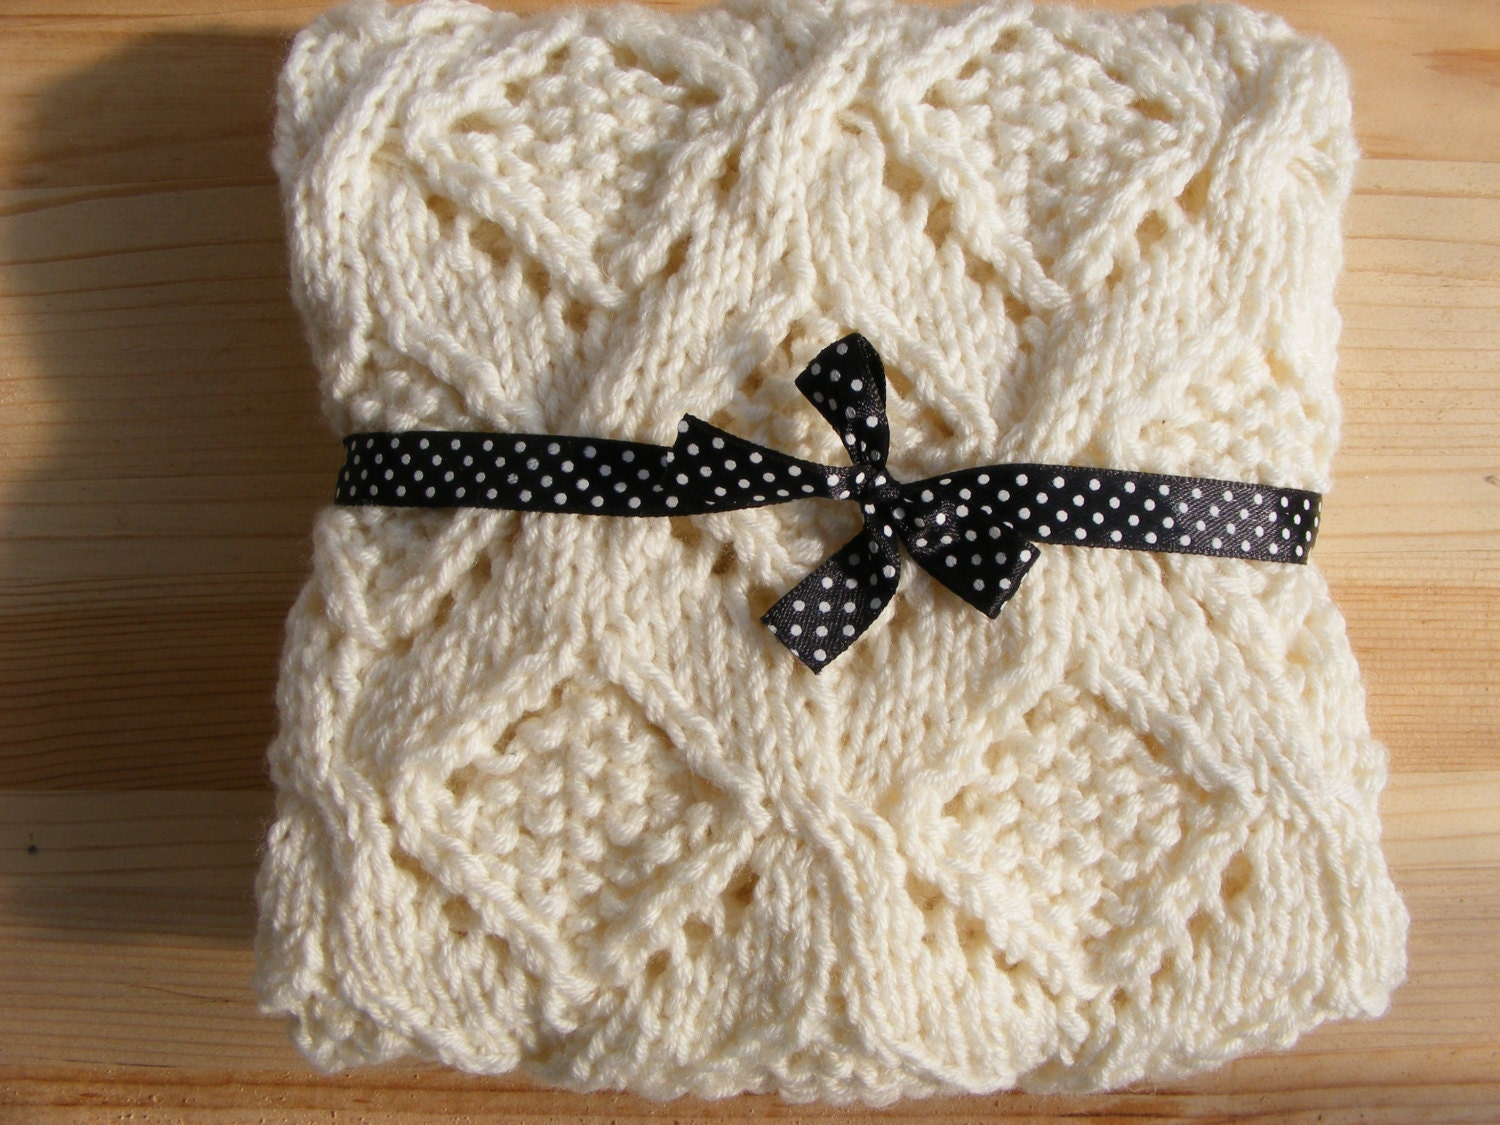 Hand Knitting Blankets : Knitted baby blanket hand knit natural by letricott